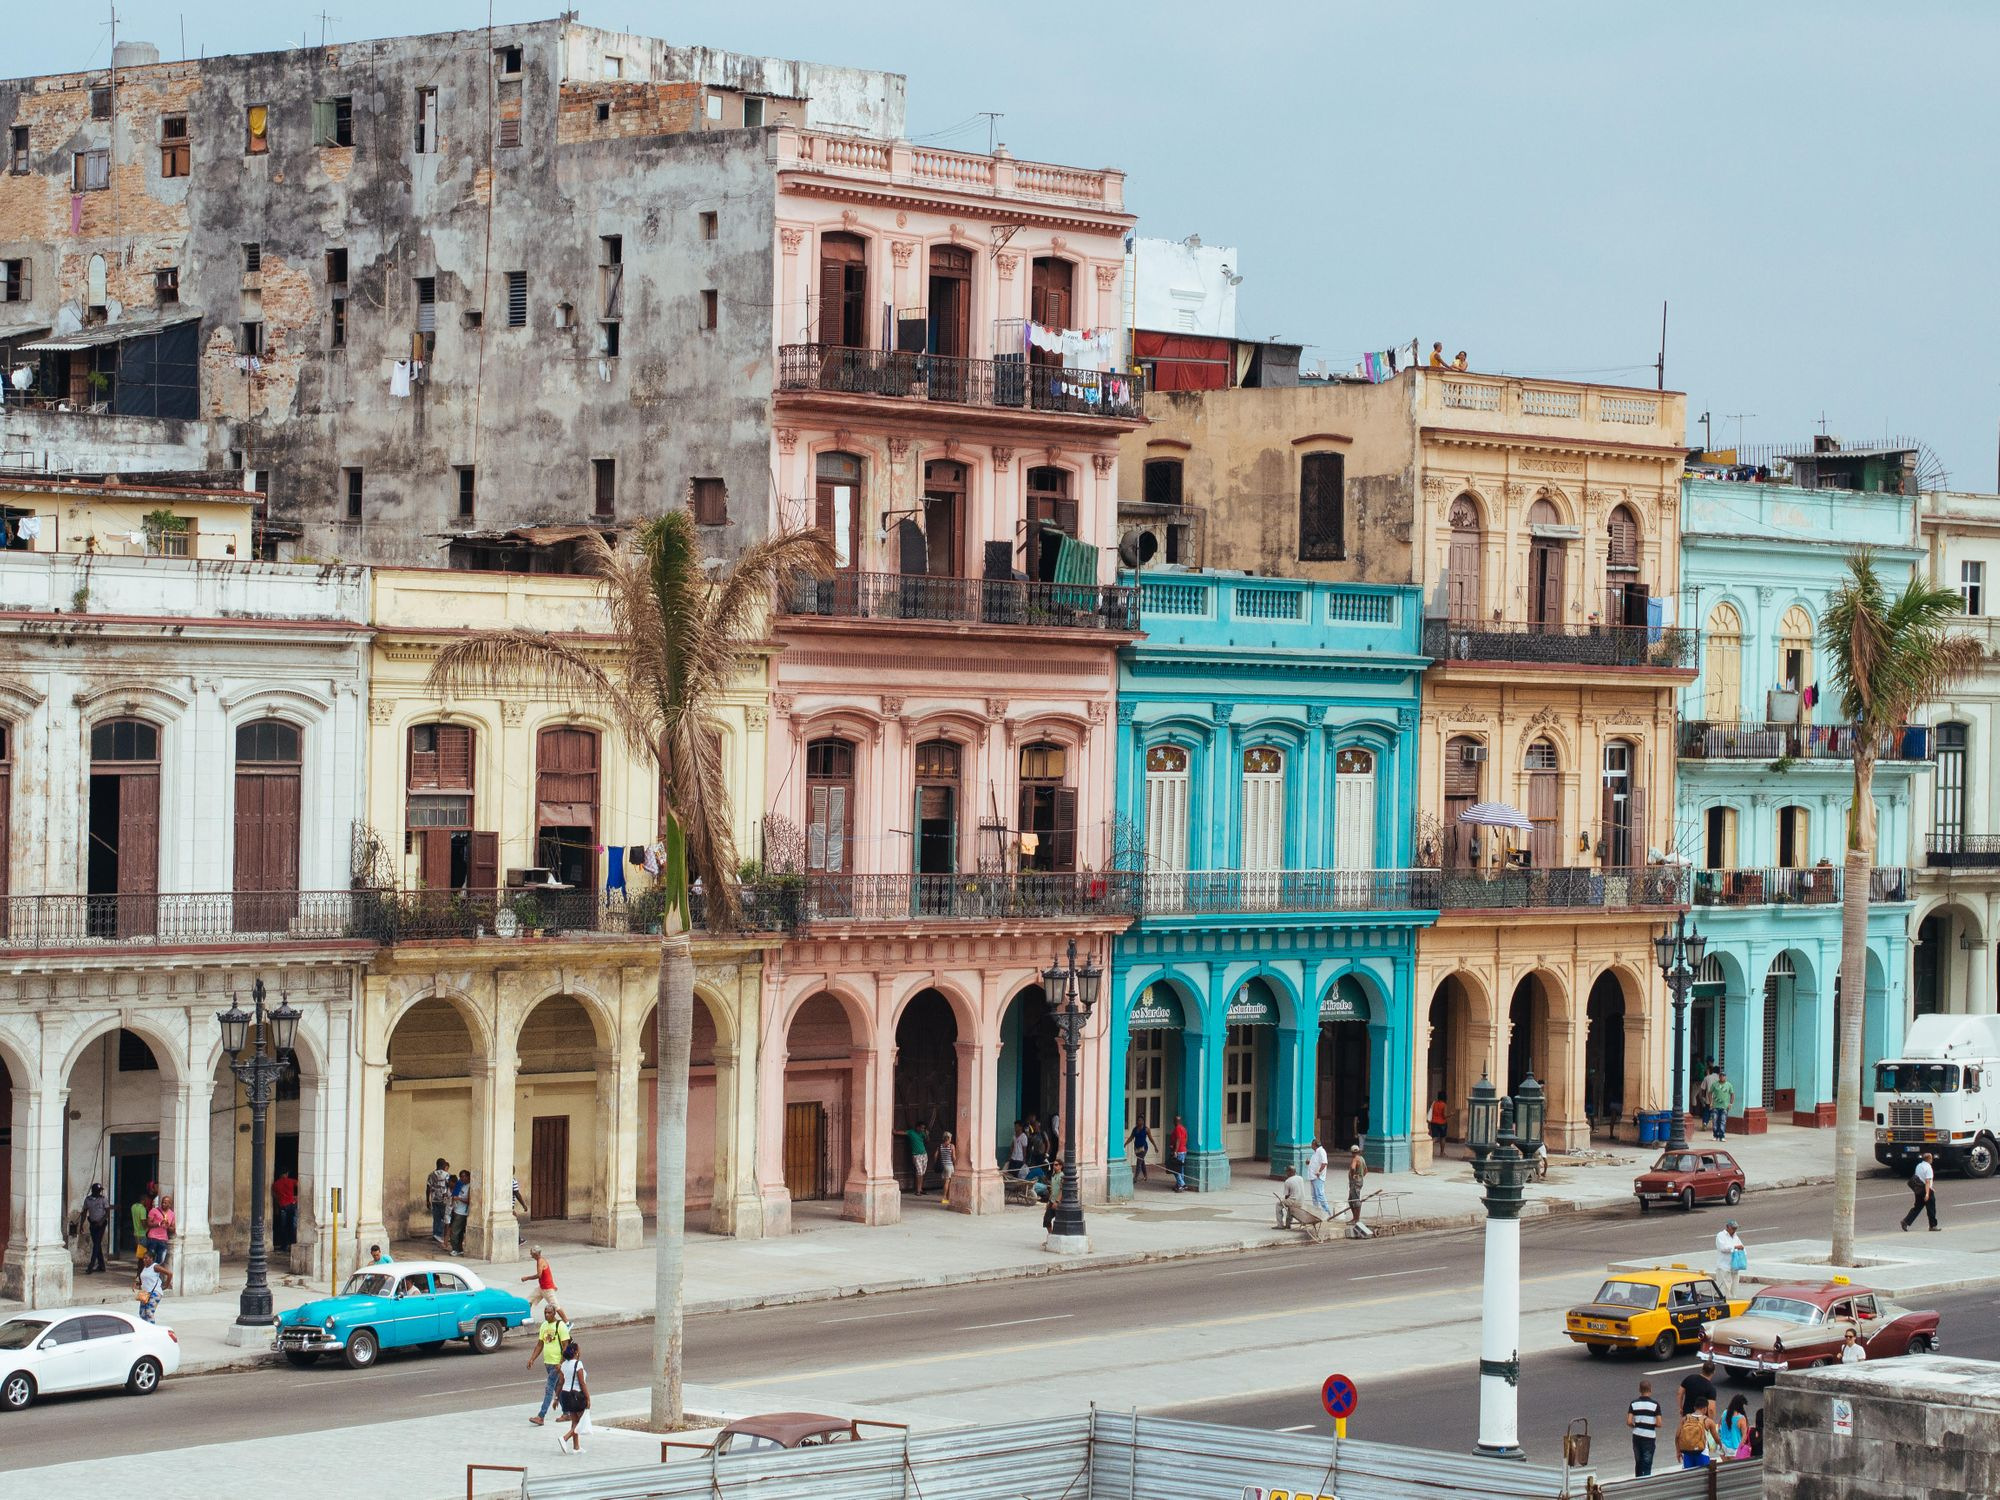 Do We Need Toilet Paper? And Other Questions I Brought Back With Me From Cuba